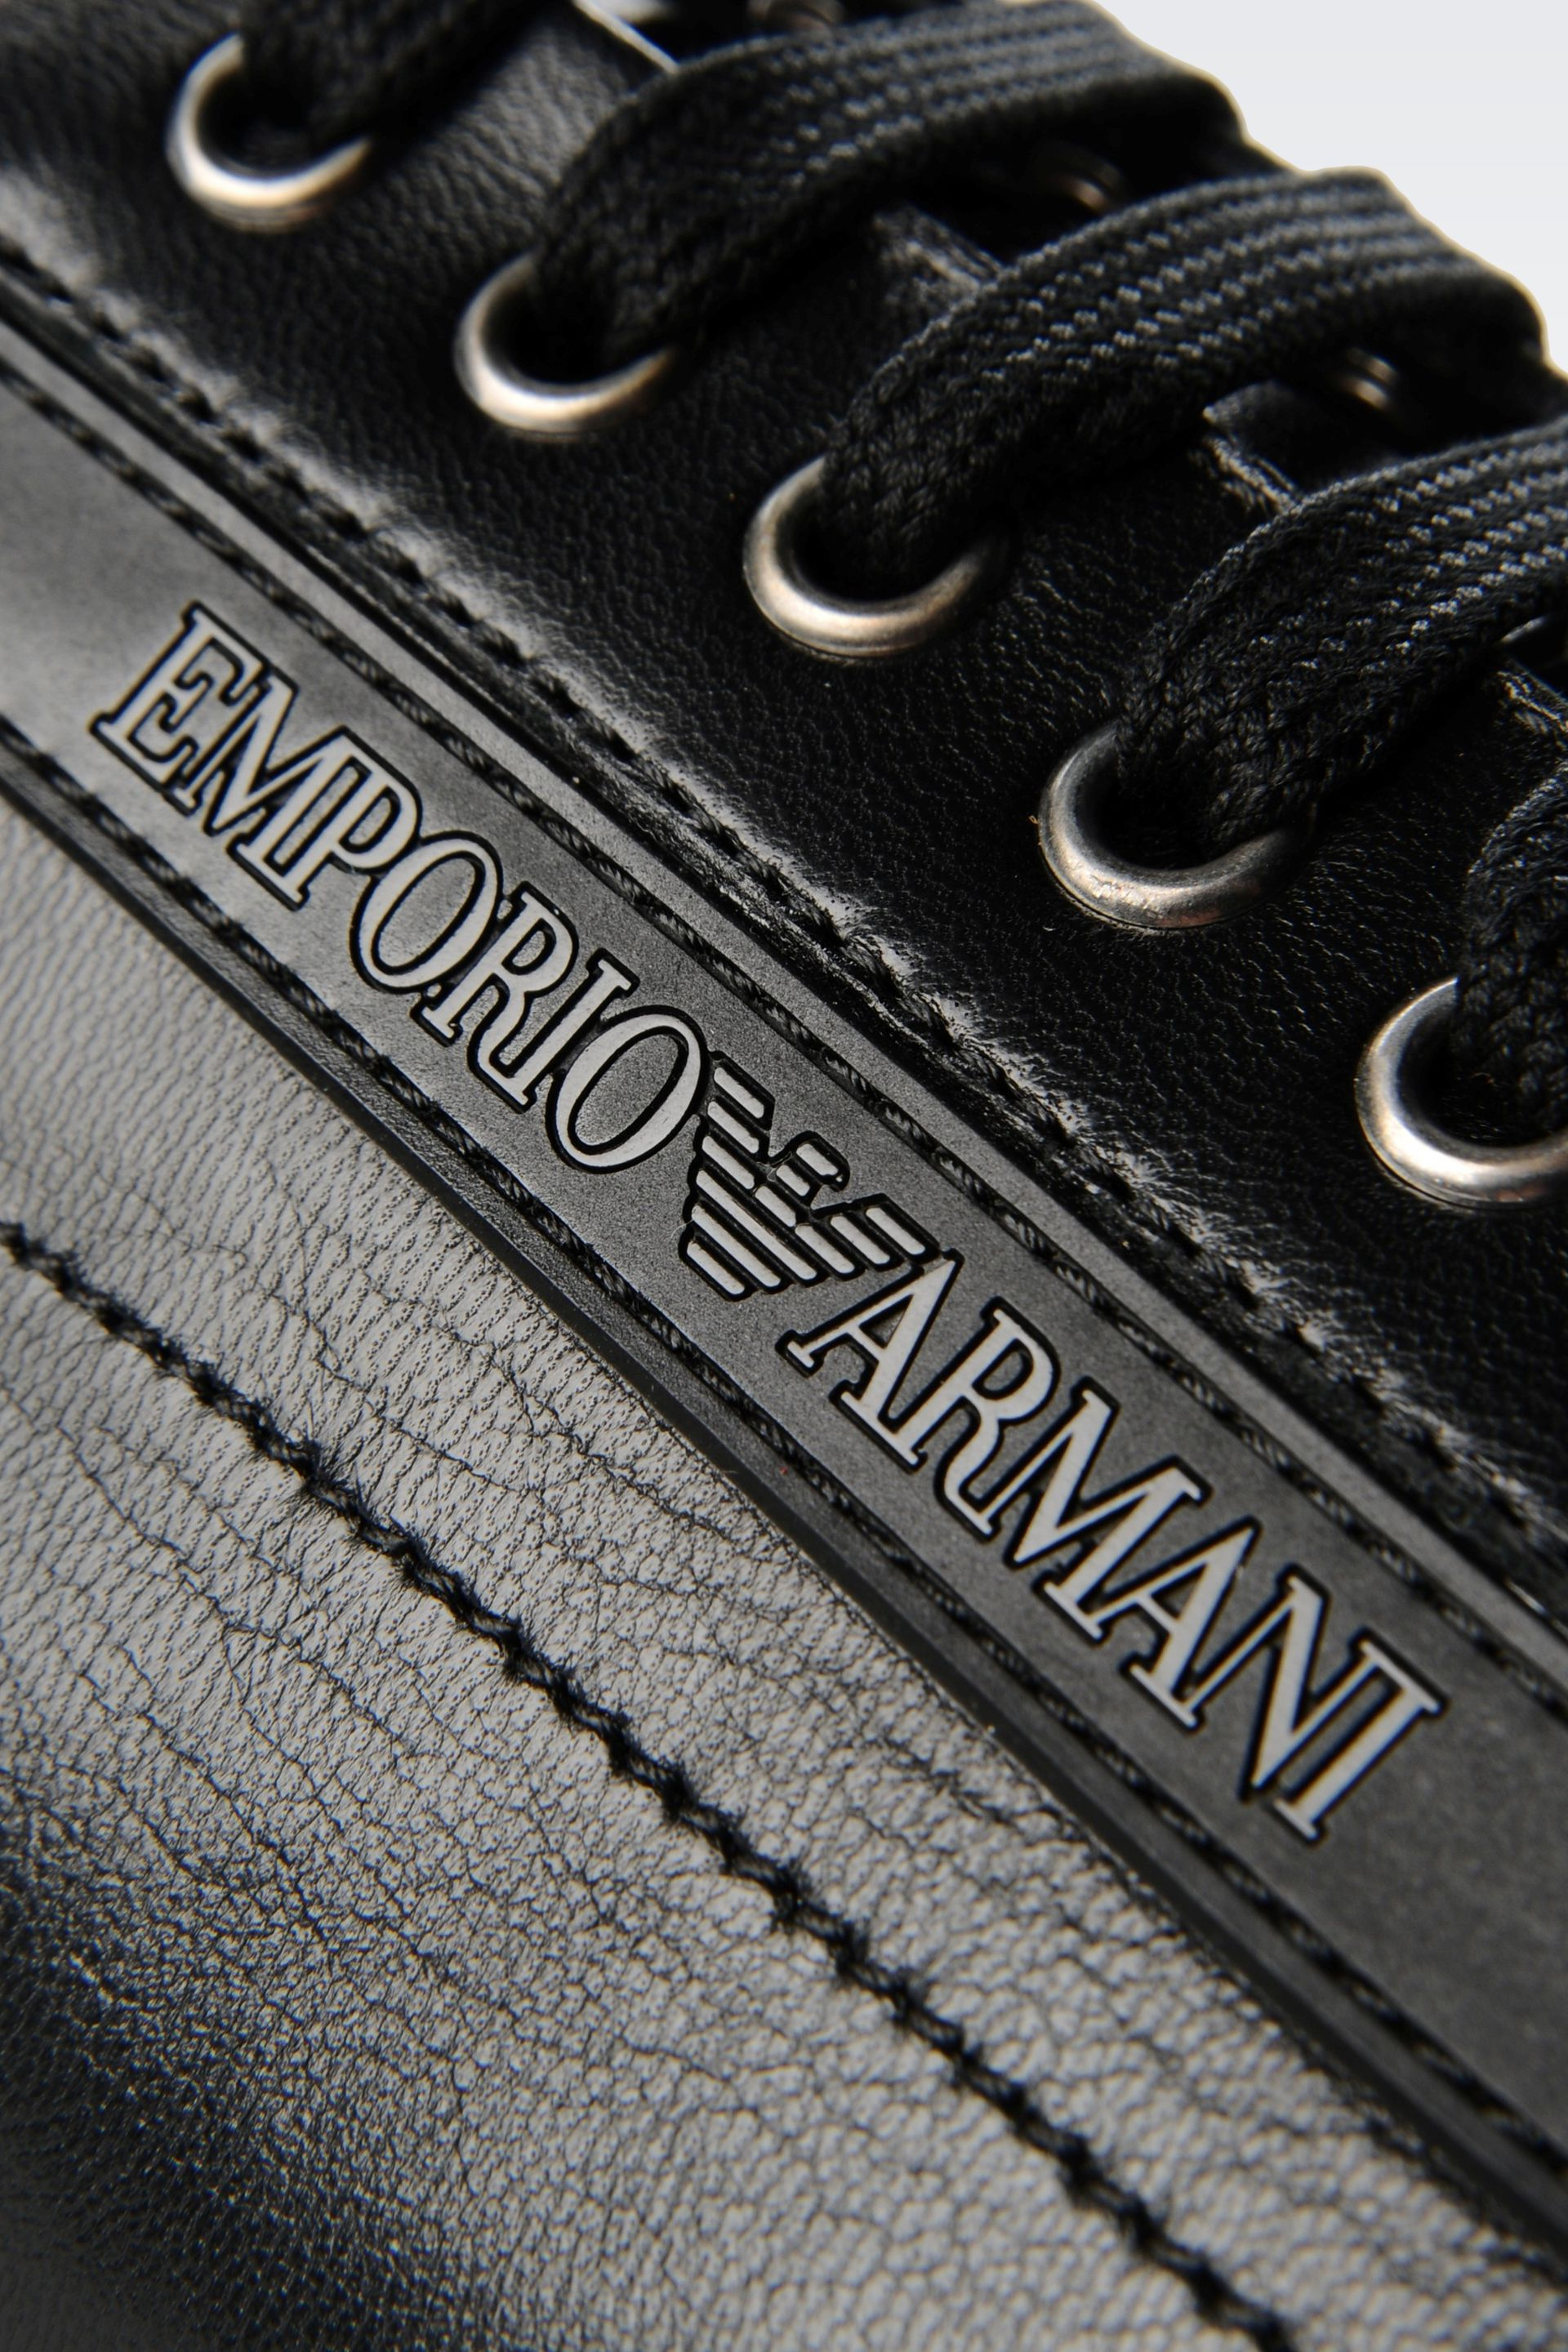 eeaab11f8 Emporio Armani Sneaker in Napa Leather with Logo in Black for Men - Lyst